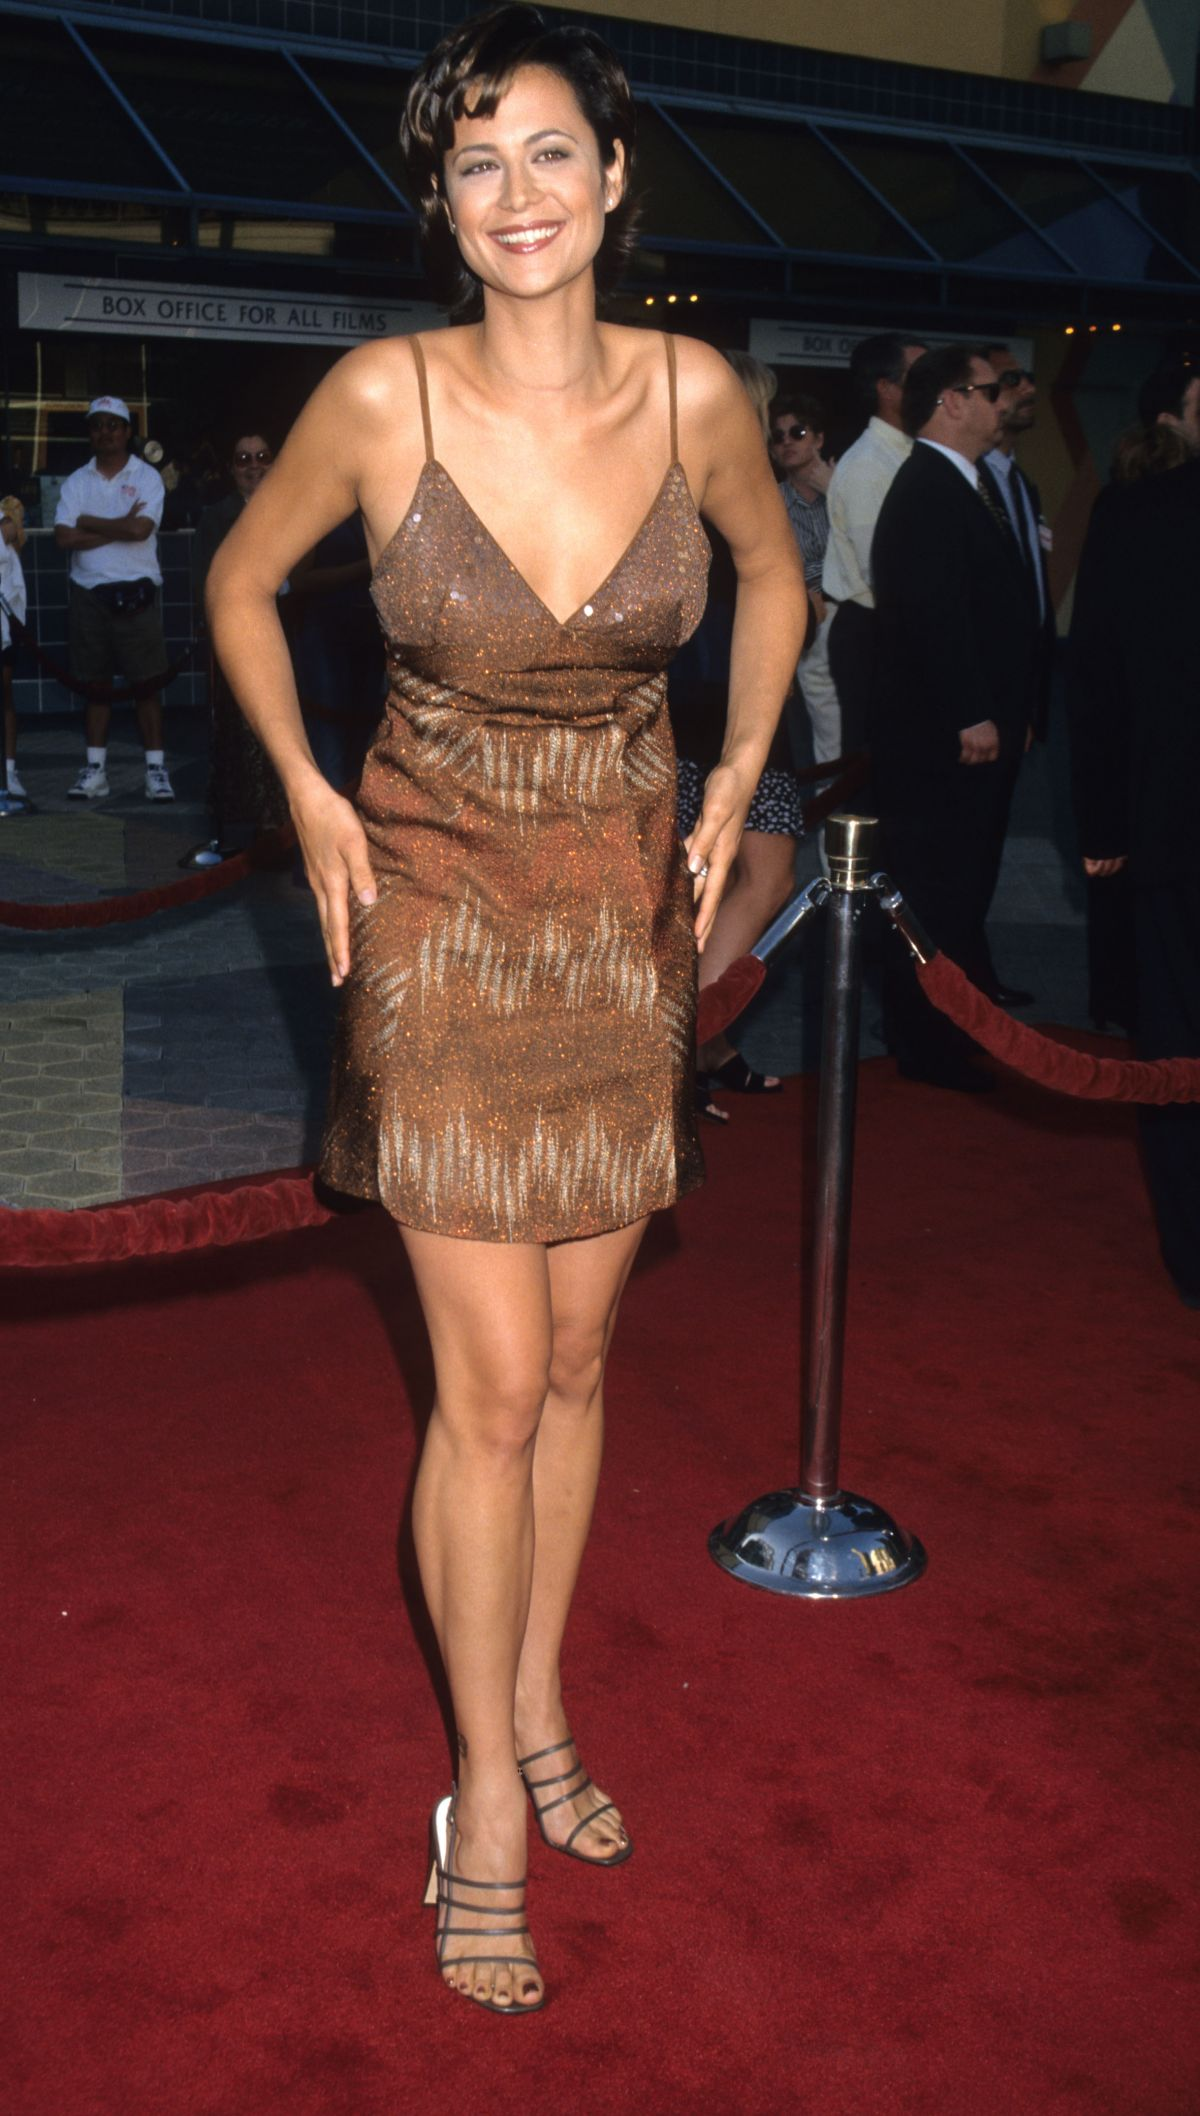 Catherine Bell Tv Guide Blue Bikini J Catherine Bell Jag Photo Shared By Austine-2 | Fans Share Images